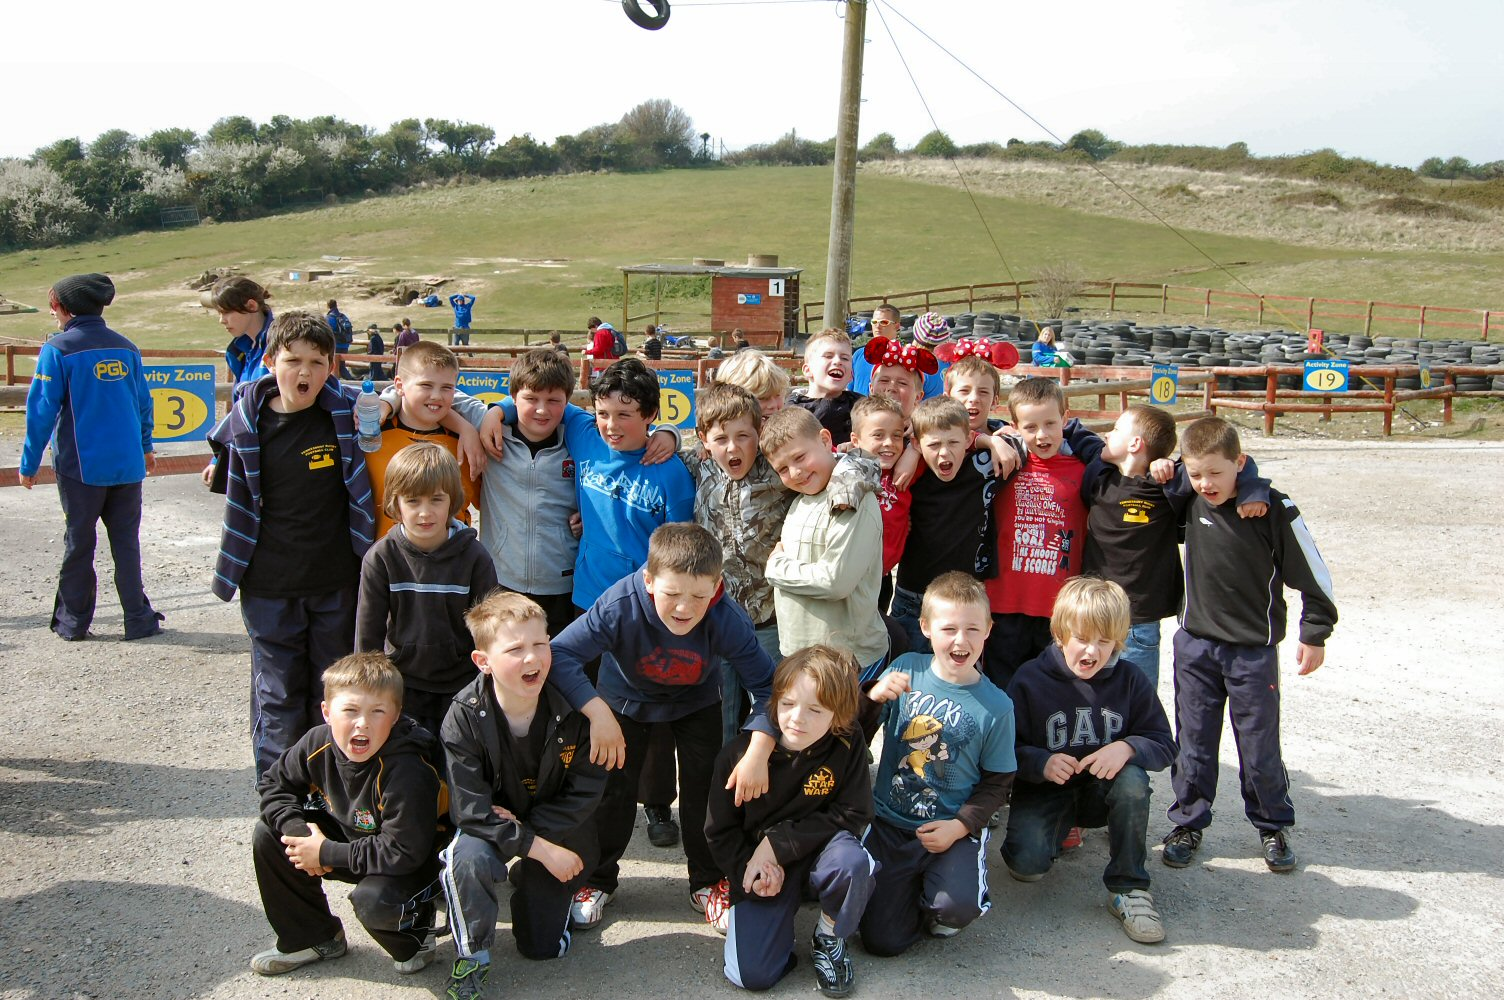 Tigers on Tour – Weymouth 2010